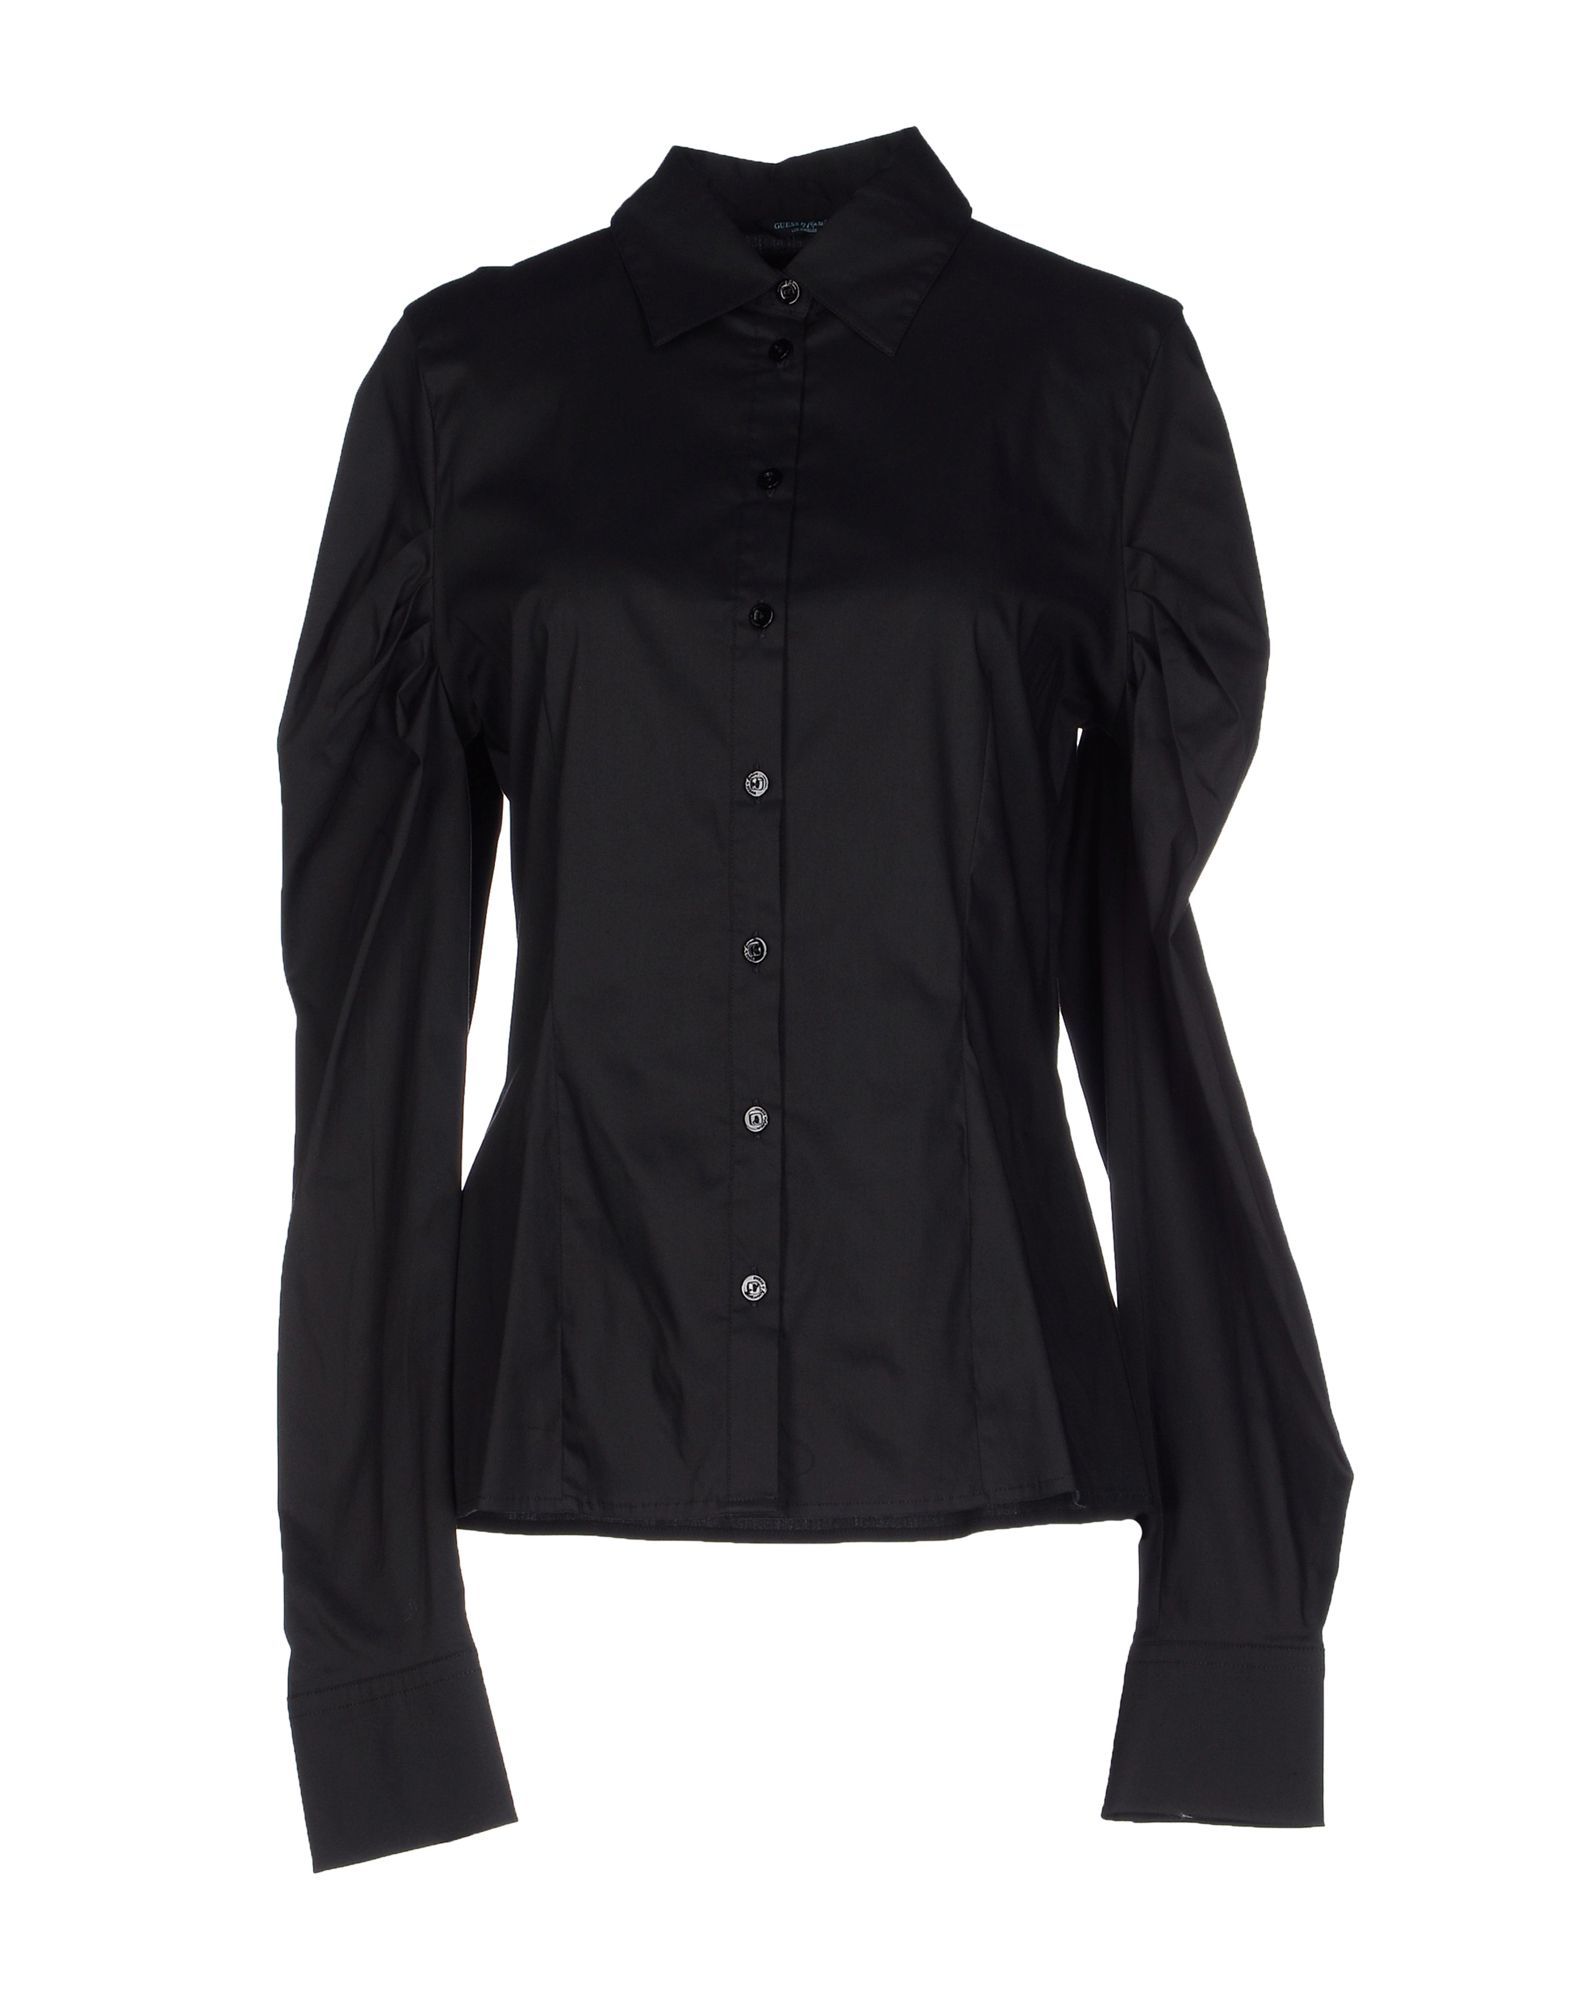 Lyst - Guess Shirt in Black